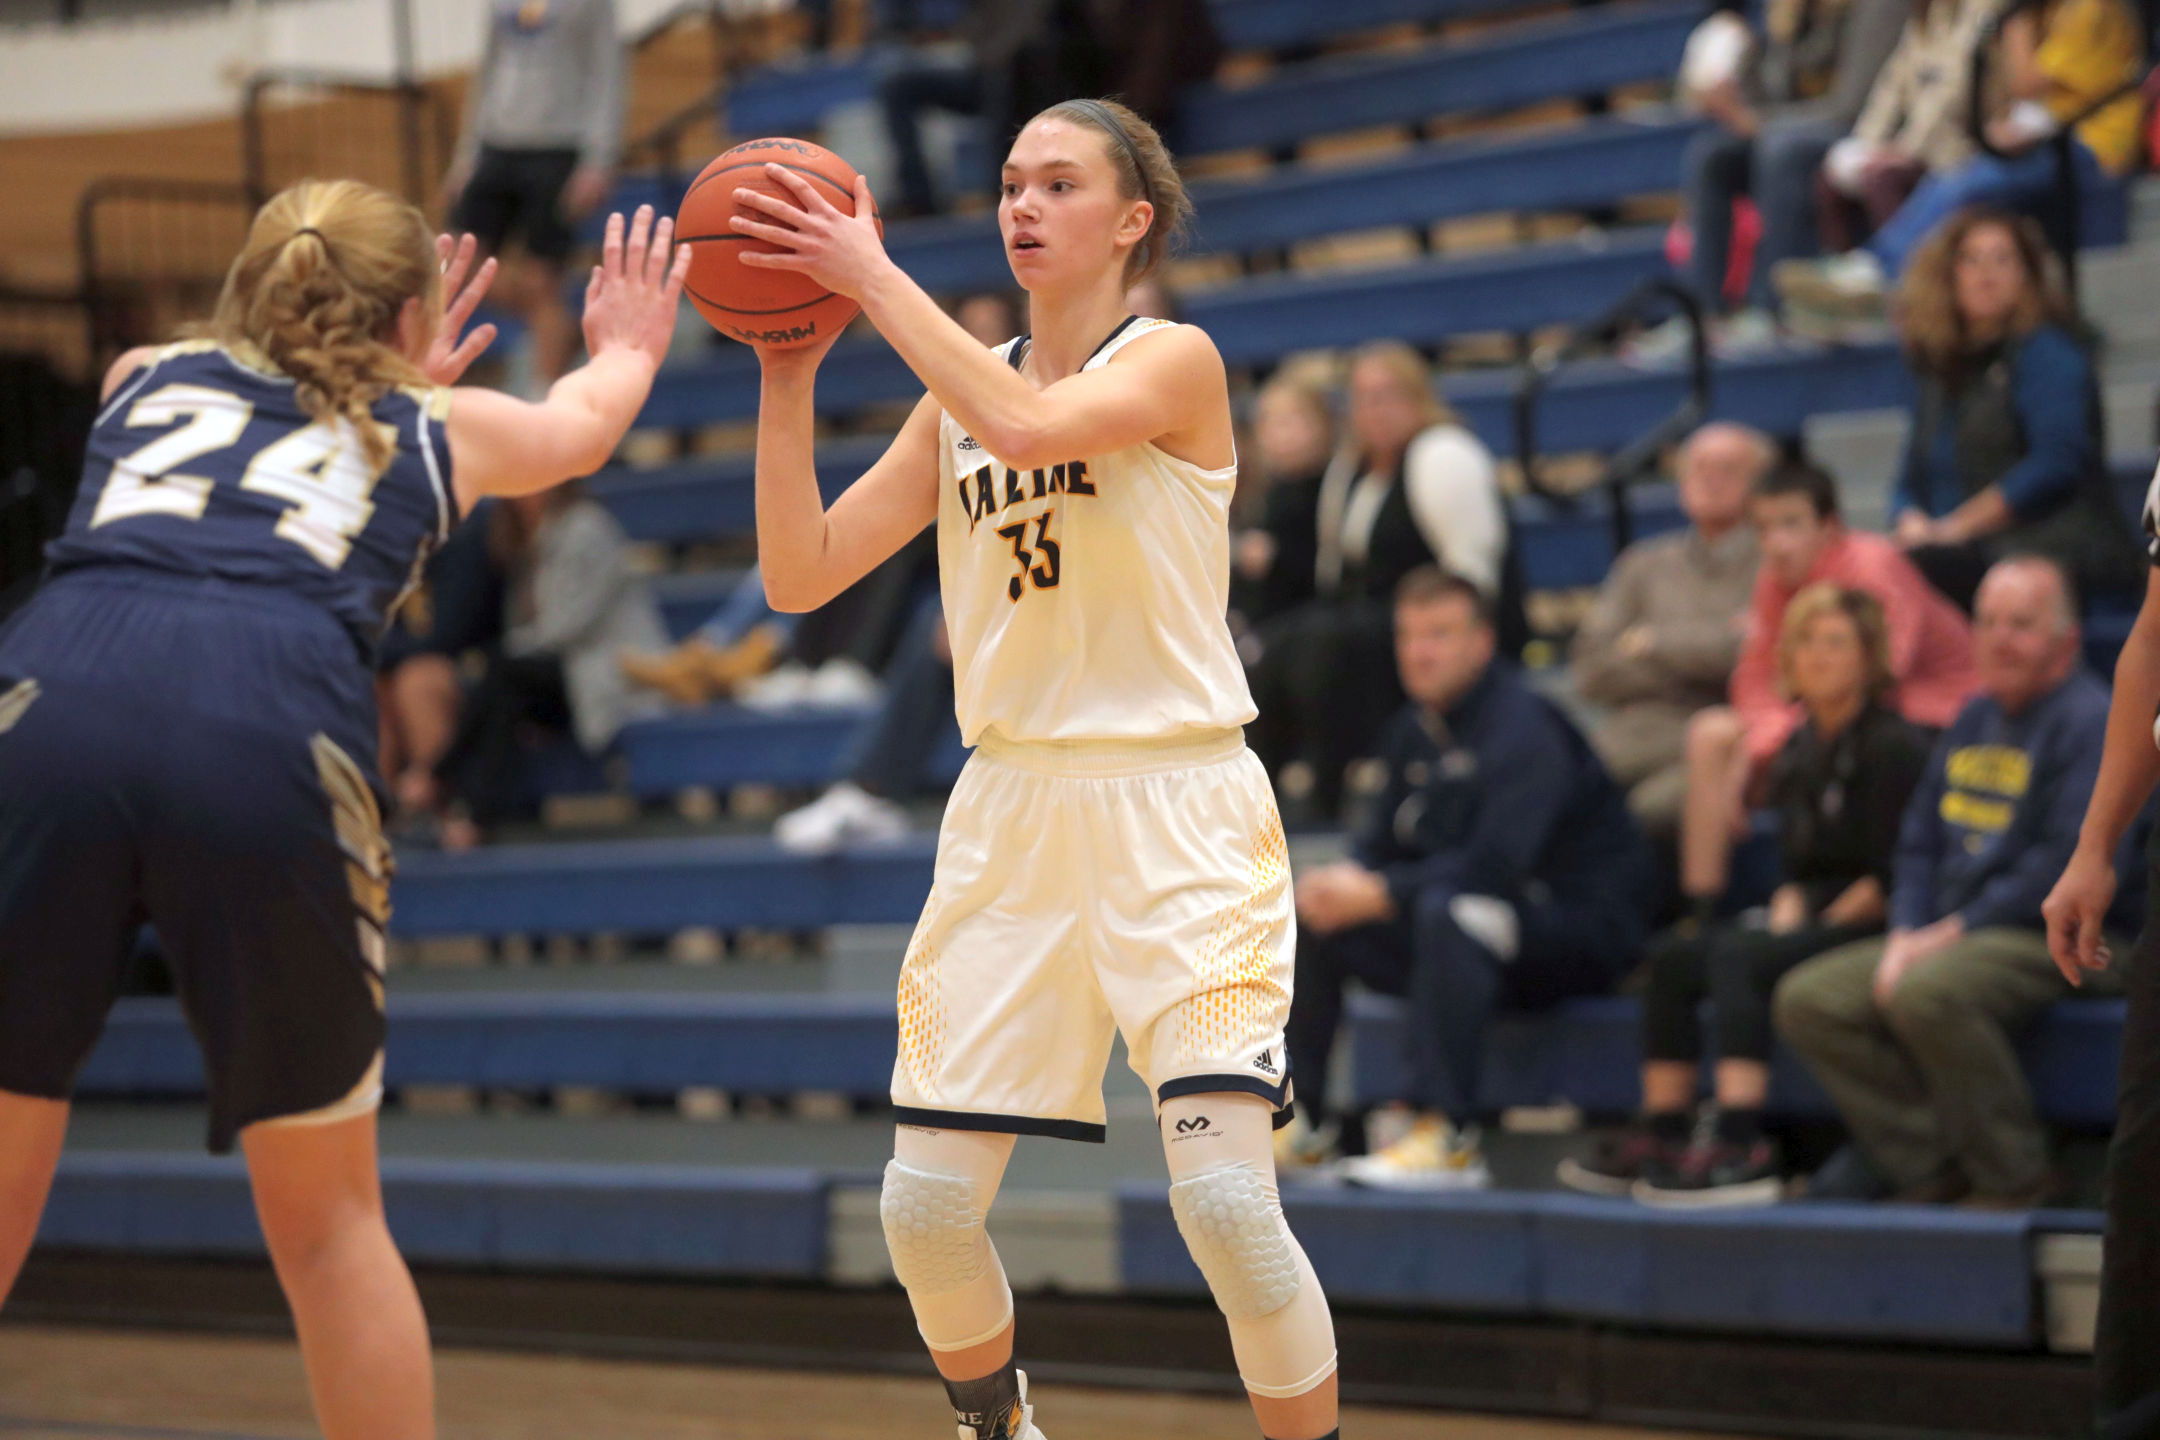 The Saline Post: Stemmer Scores 24 as Saline Opens SEC Red Schedule With Win at Pioneer